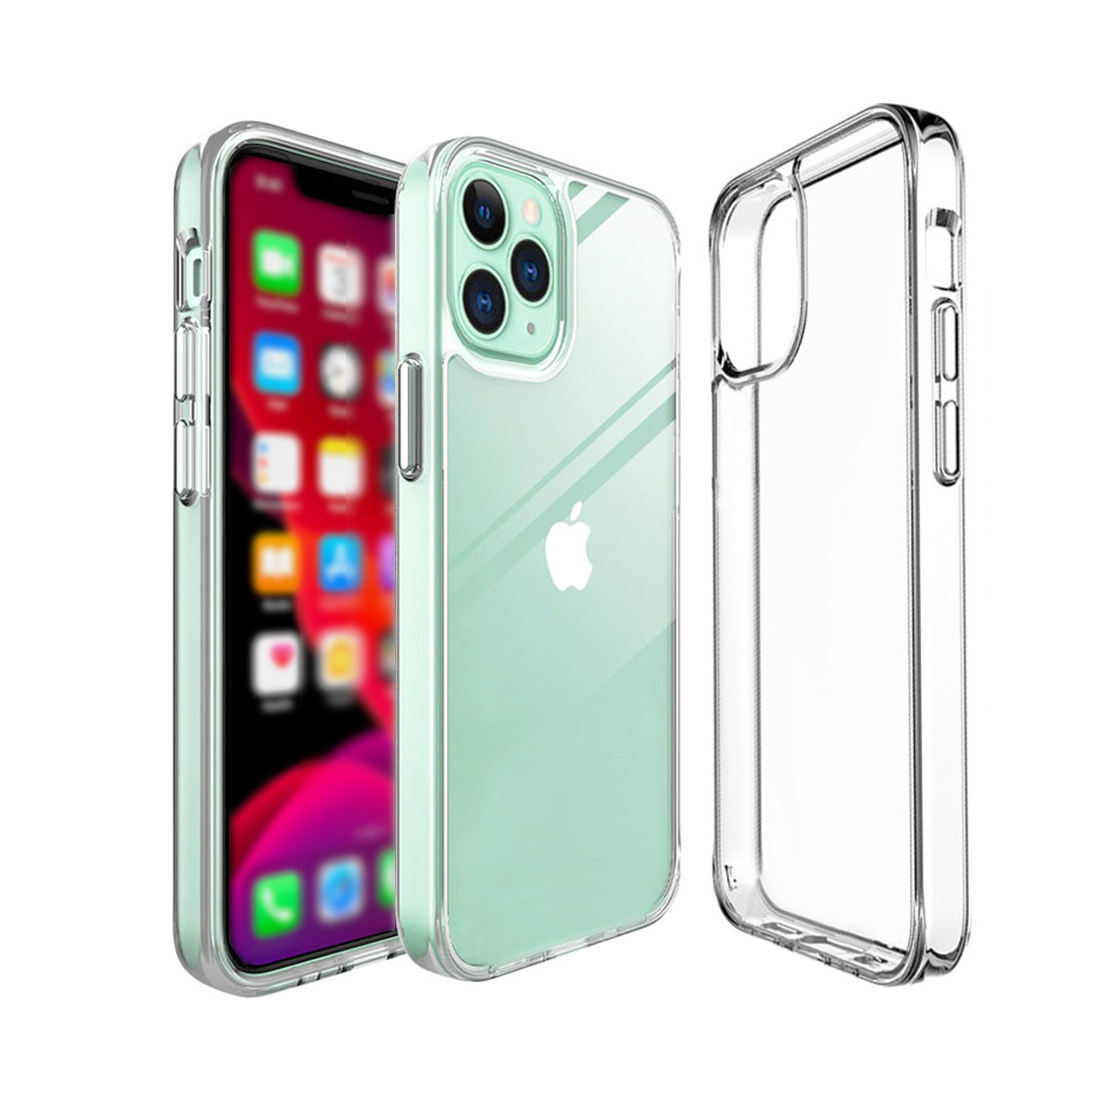 Clear Telefoon Case Voor Iphone 7 12 Mini Case Iphone Xr Silicon Soft Cover Voor Iphone 11 12 Pro Xs max X 8 7 6 S Plus SE2 Case